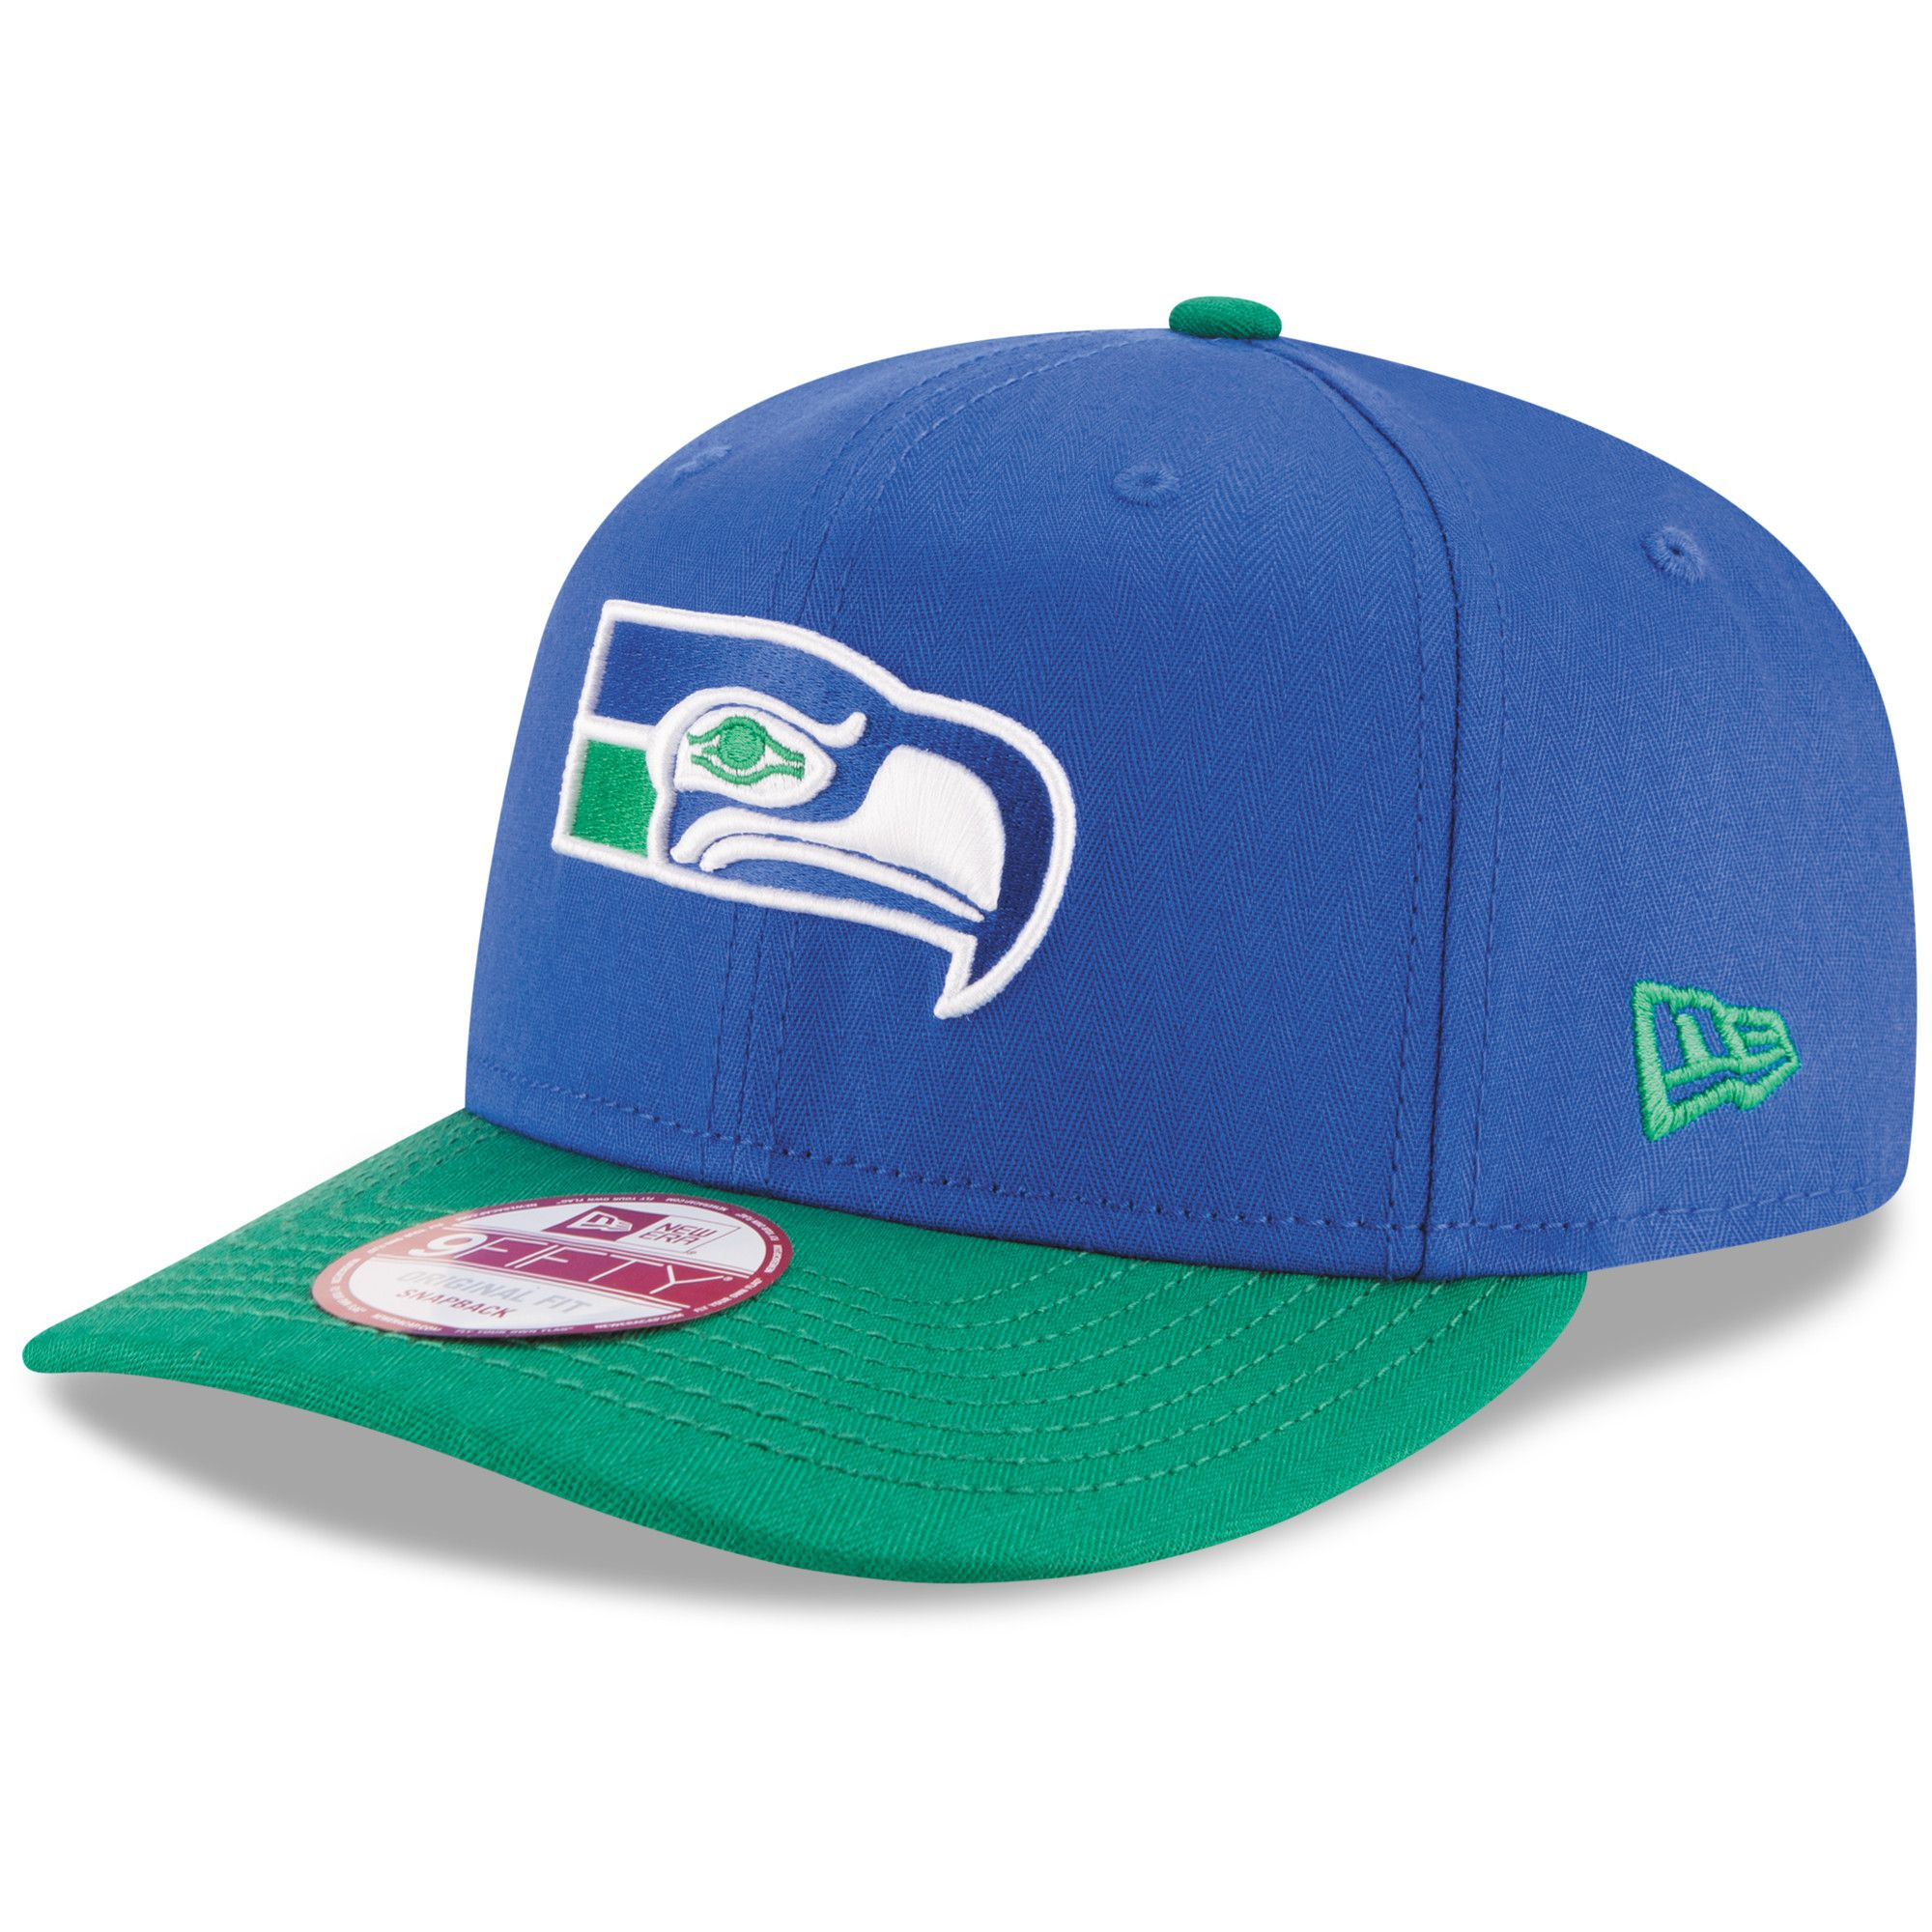 the latest c5870 812b0 Men s Seattle Seahawks New Era Royal Green Historic Detailed Vize Original  Fit 9FIFTY Snapback Adjustable